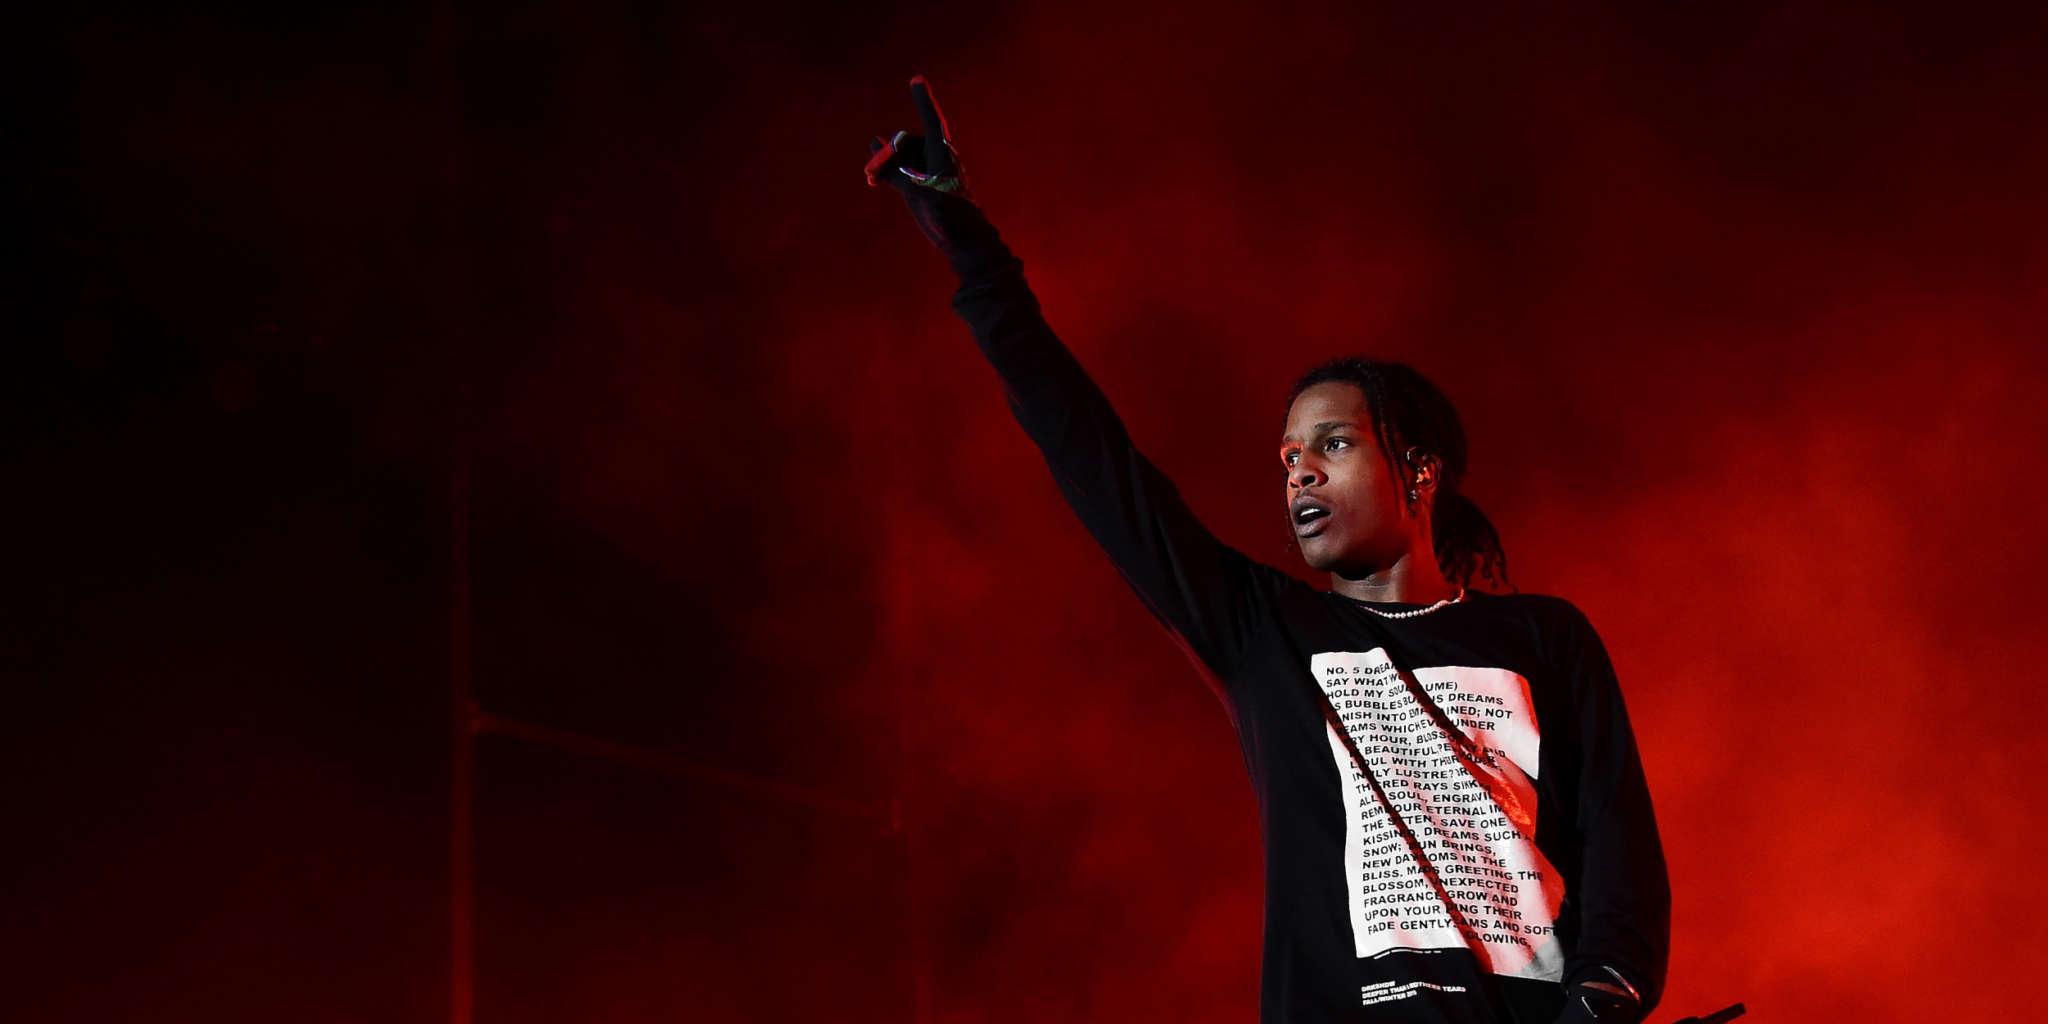 A$AP Rocky Plans To Design Uniforms For The Inmates In The Swedish Prison